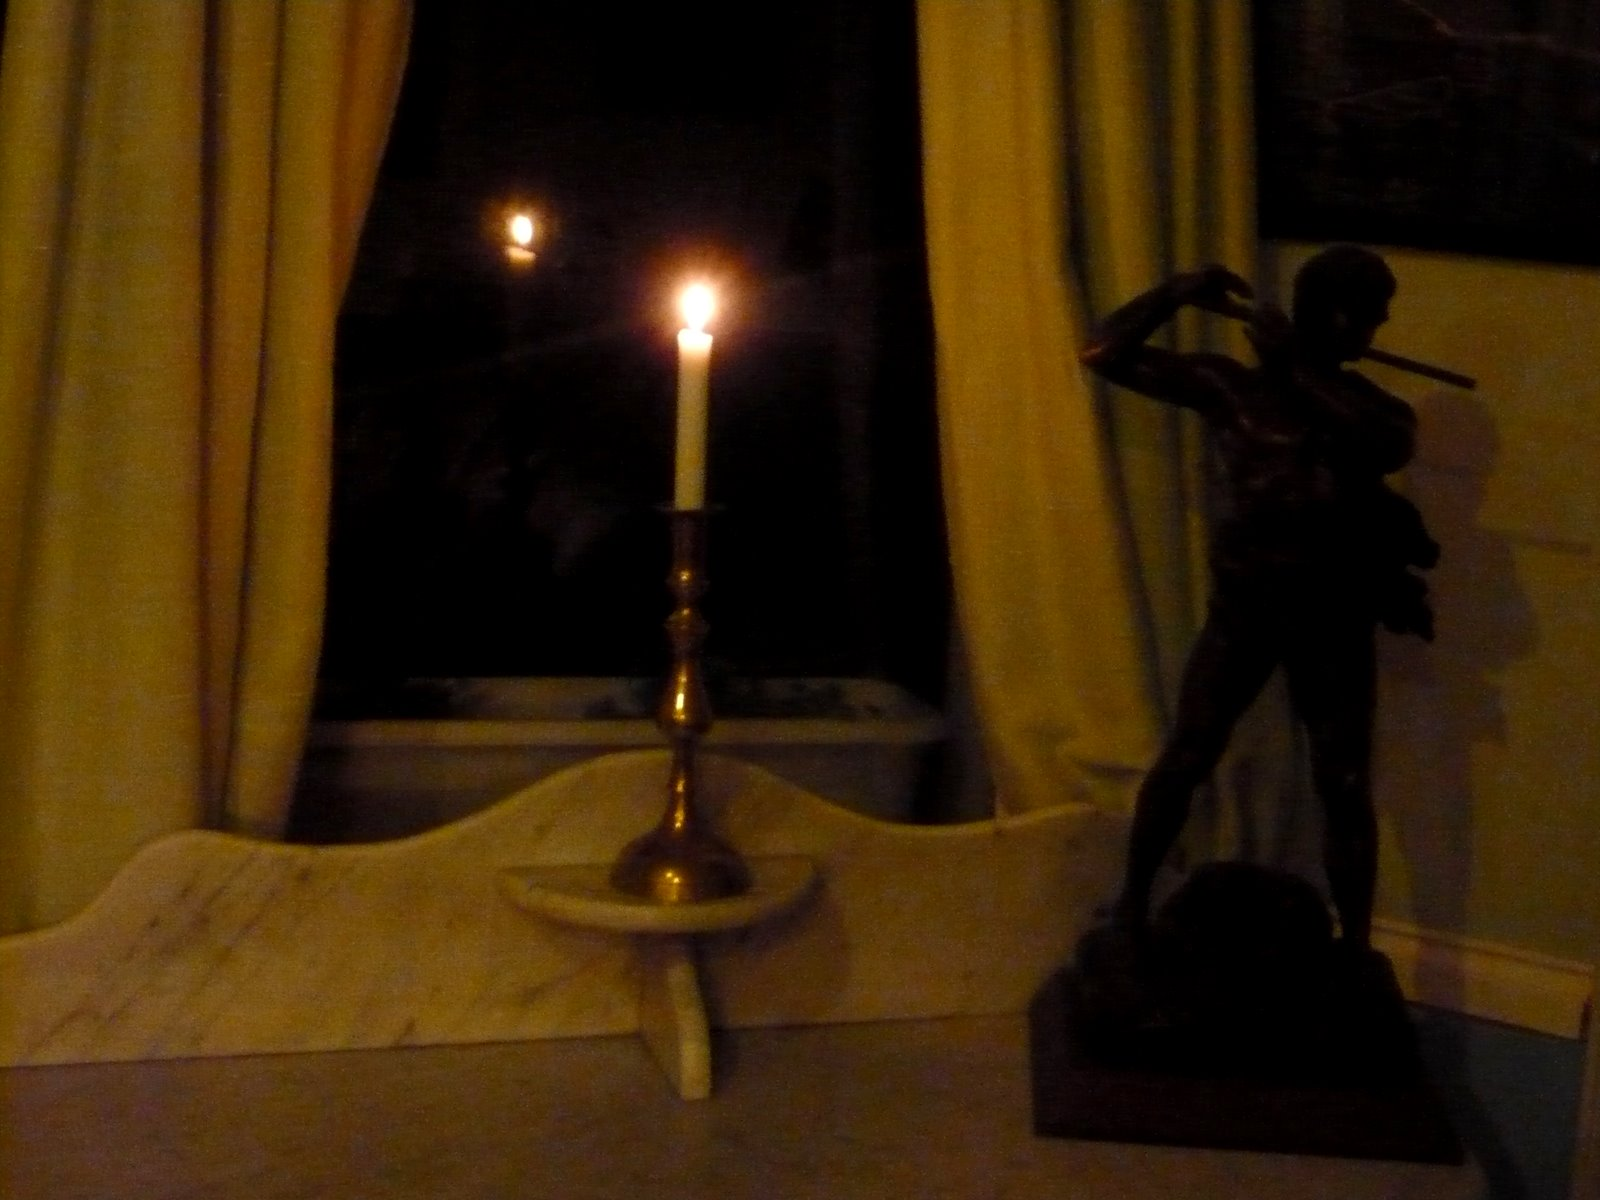 call me ishmael evensong put a candle in the window posted by call me ishmael at 23 56